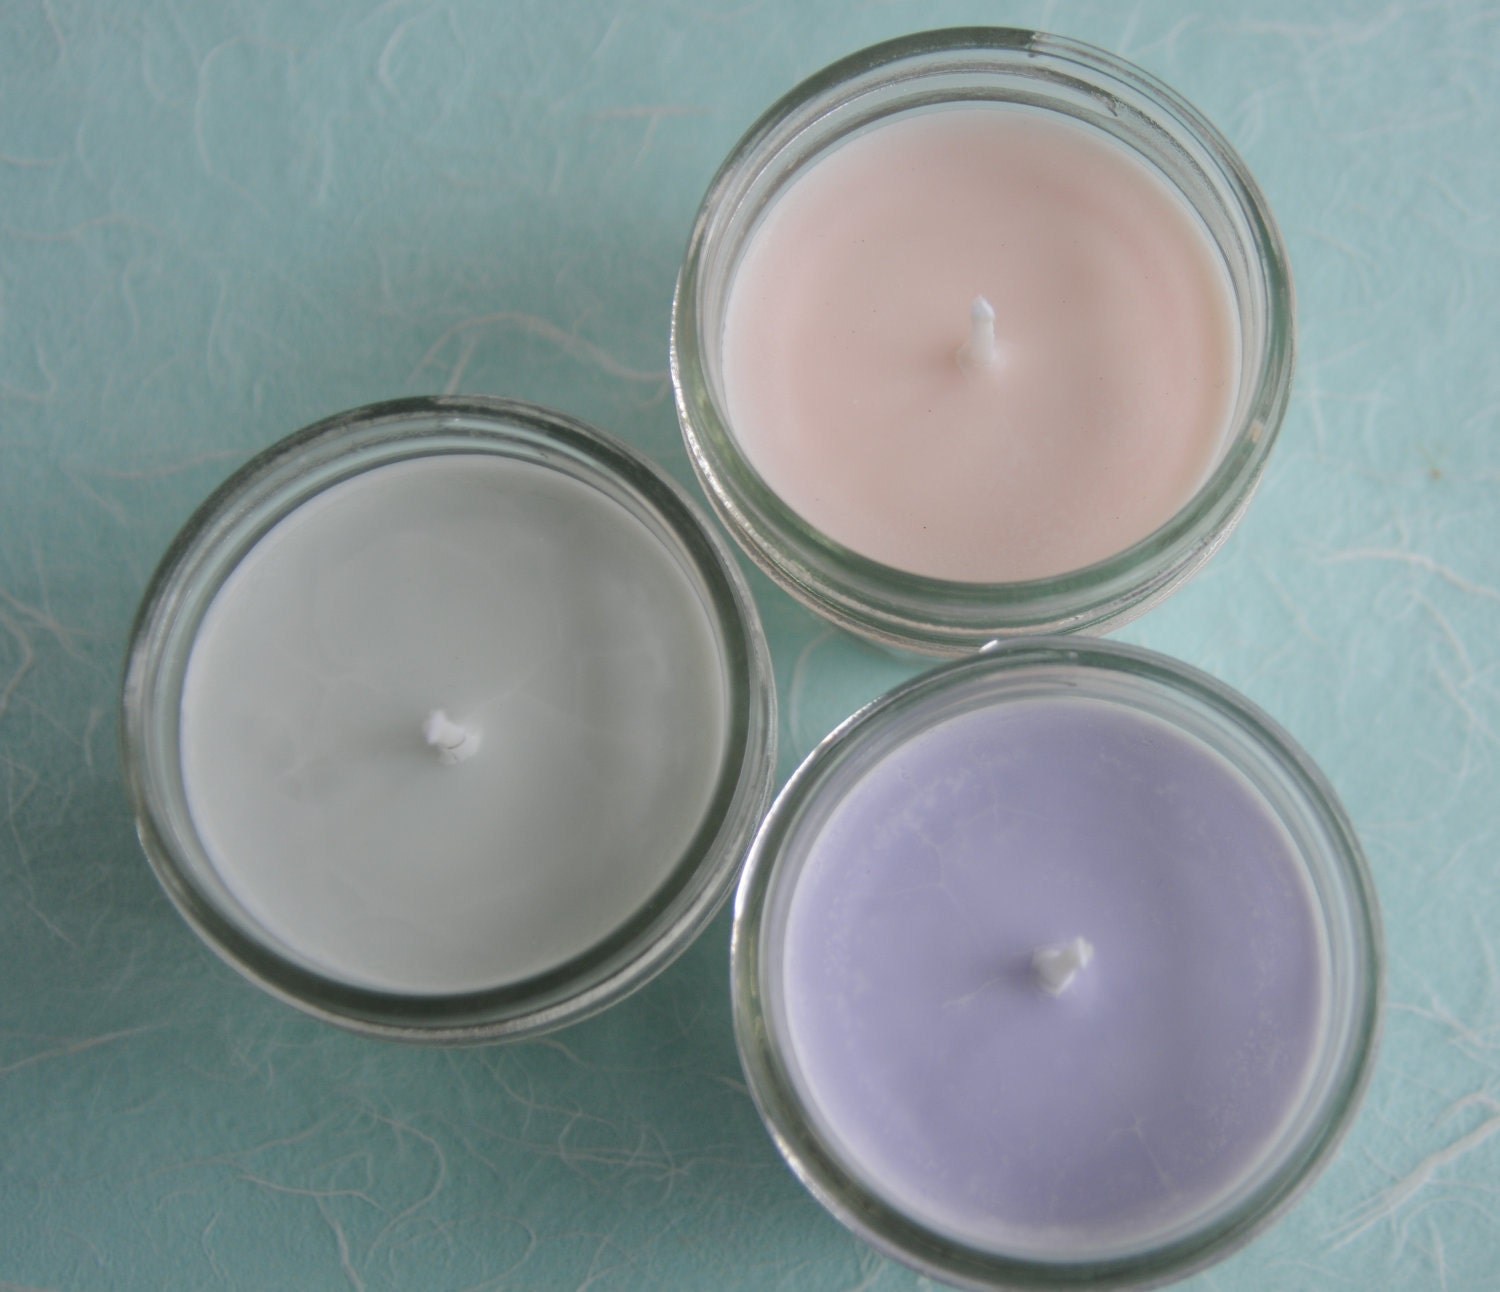 SPRING RAIN-Sale-Handmade Natural Soy Candle (4 oz.) Seasonal-Spring/Summer